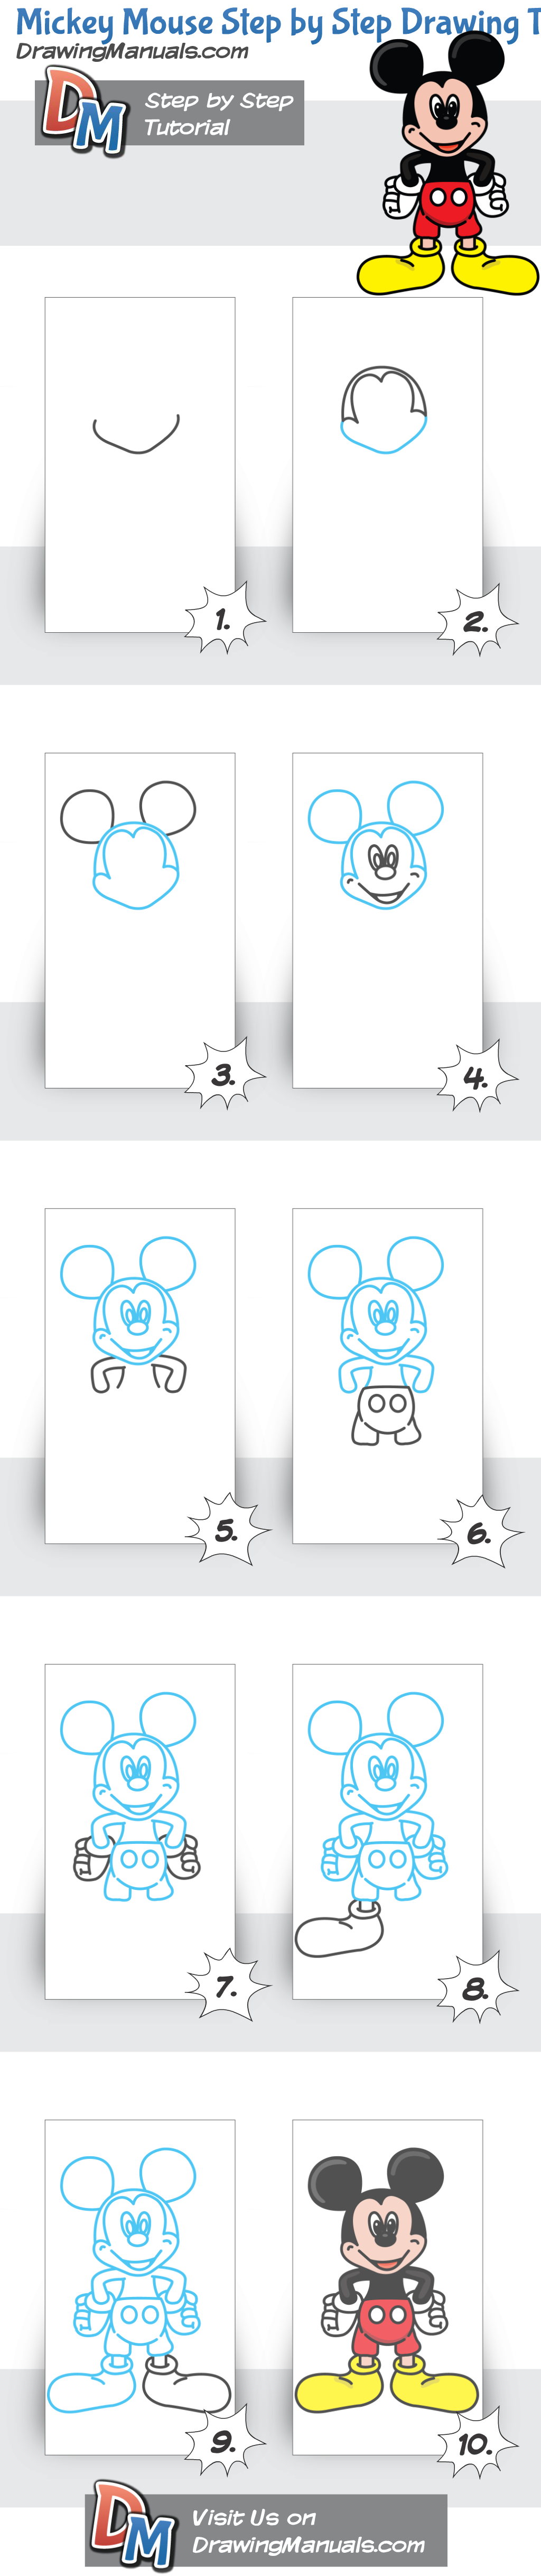 How To Draw Mickey Mouse, Stepbystep Drawing Tutorial